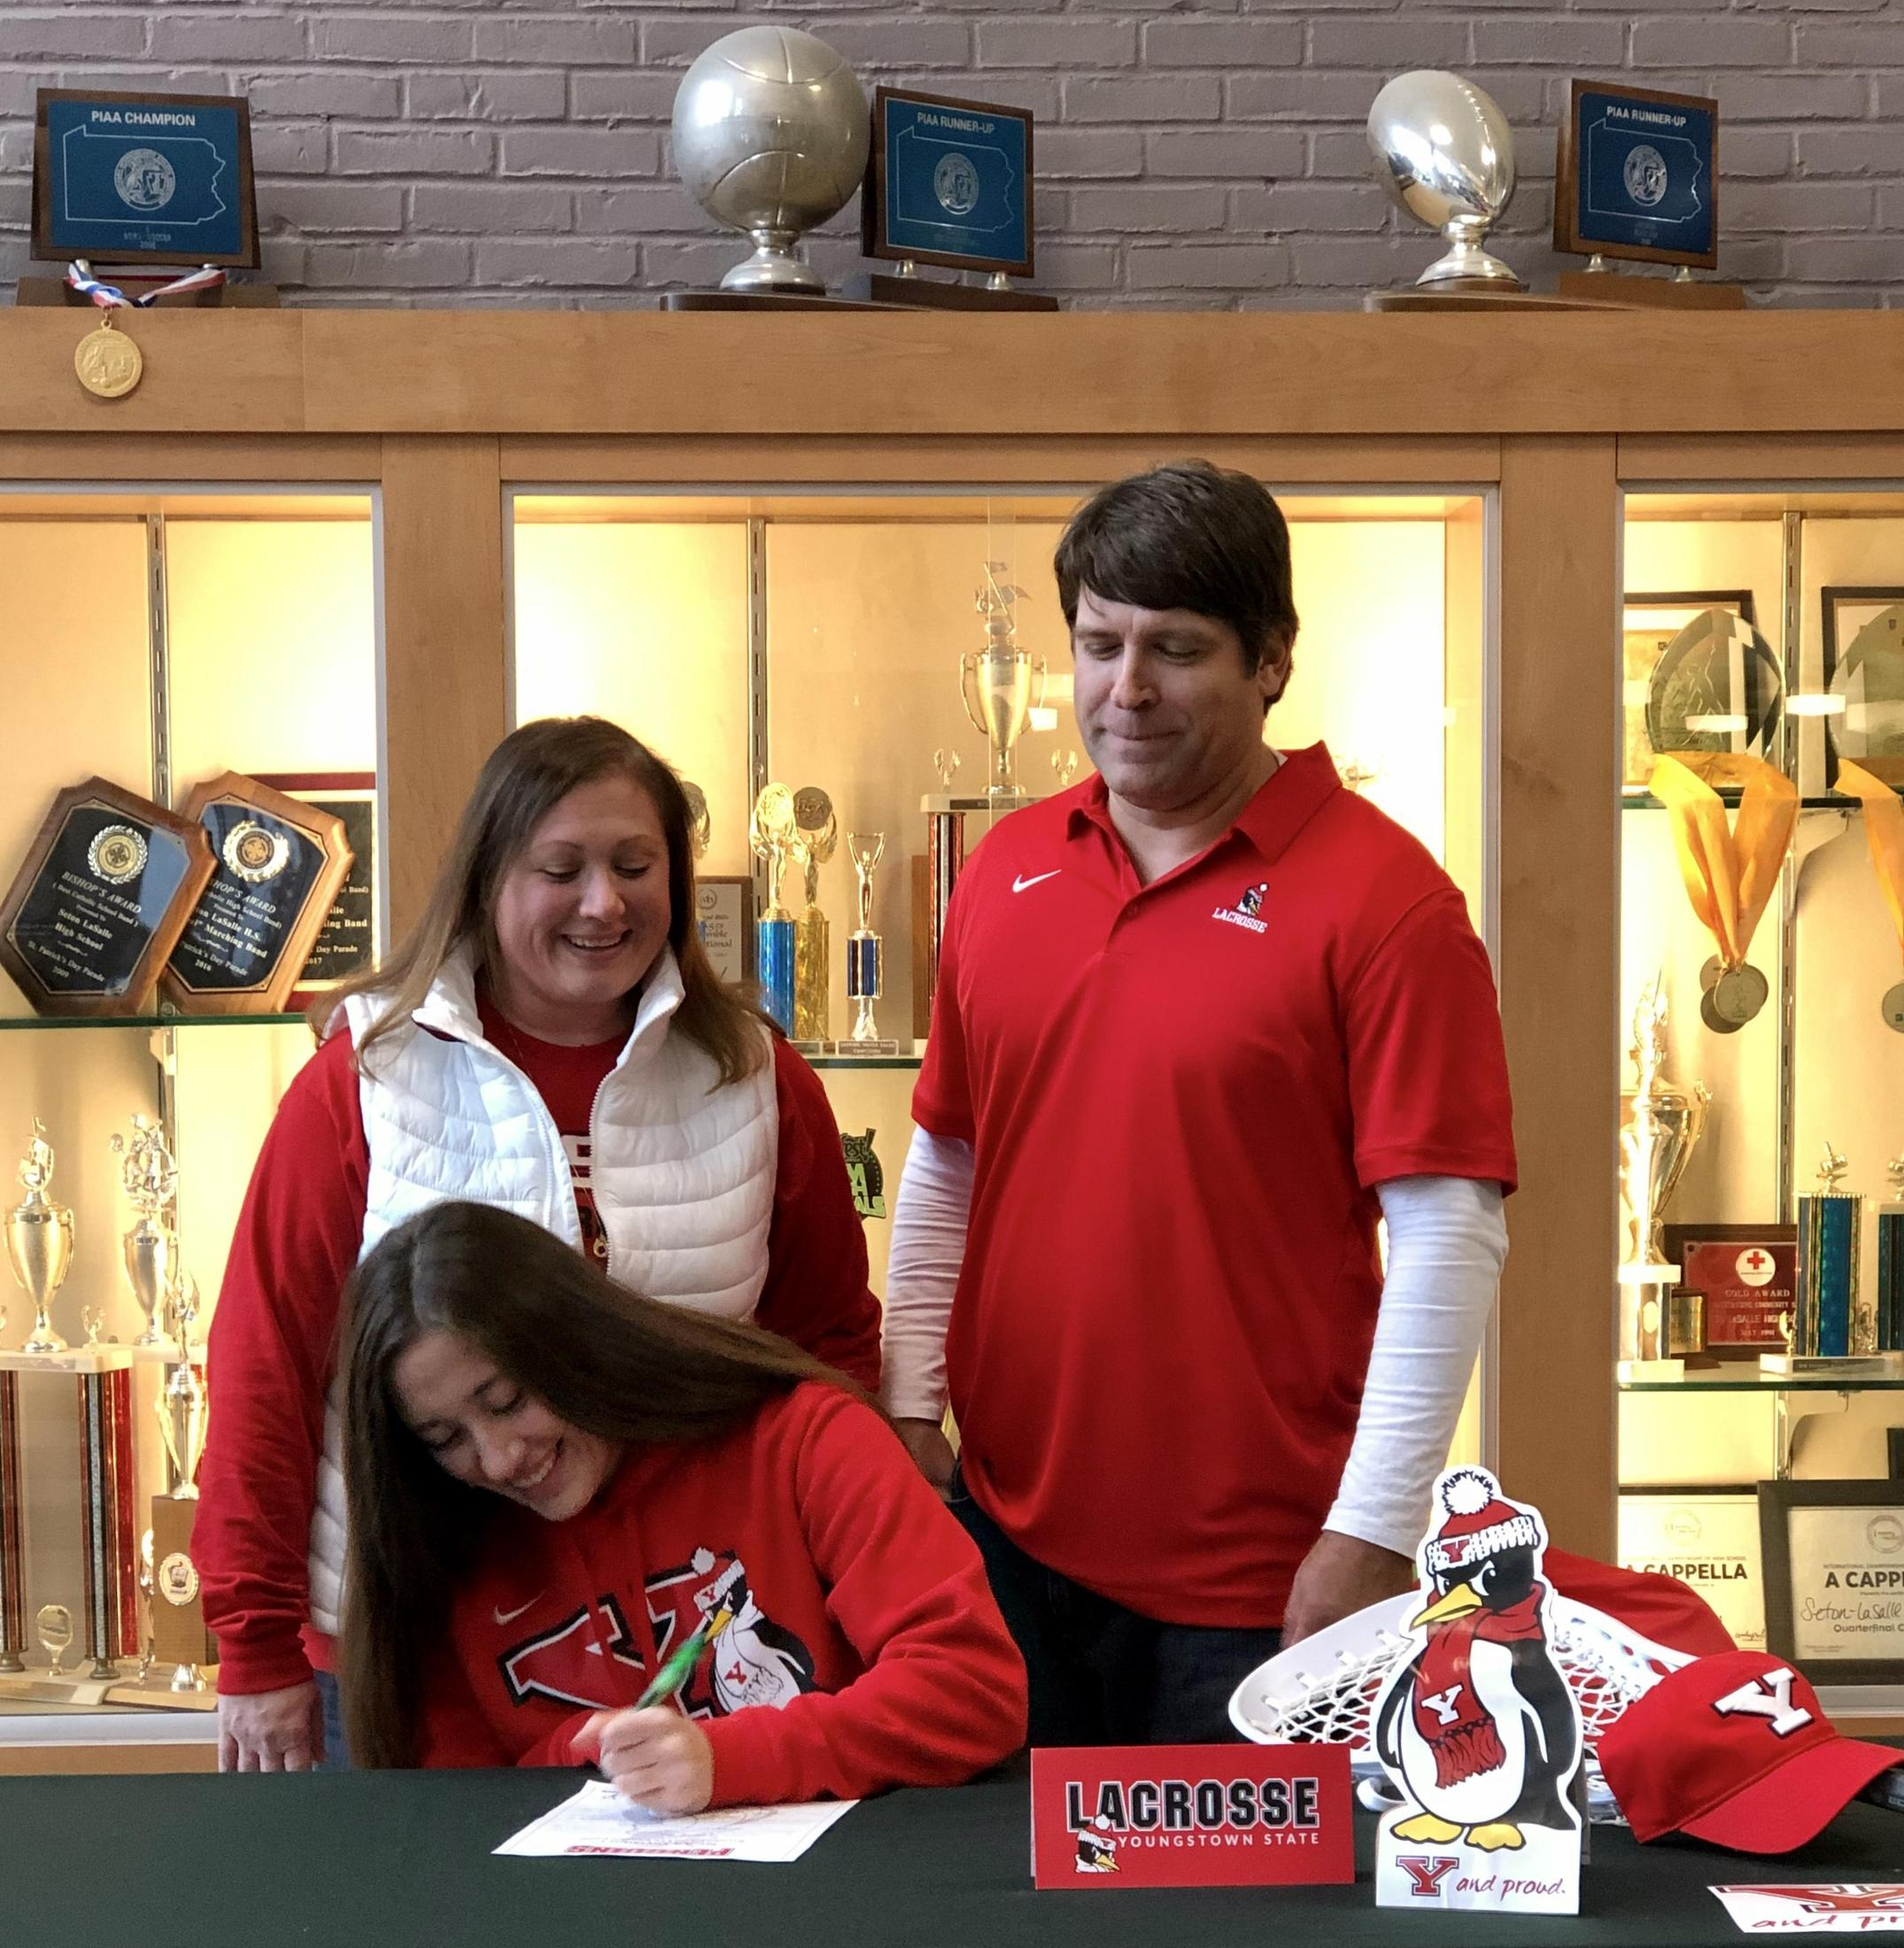 Class of 2020 senior signs her letter of intent to play lacrosse at Youngstown University